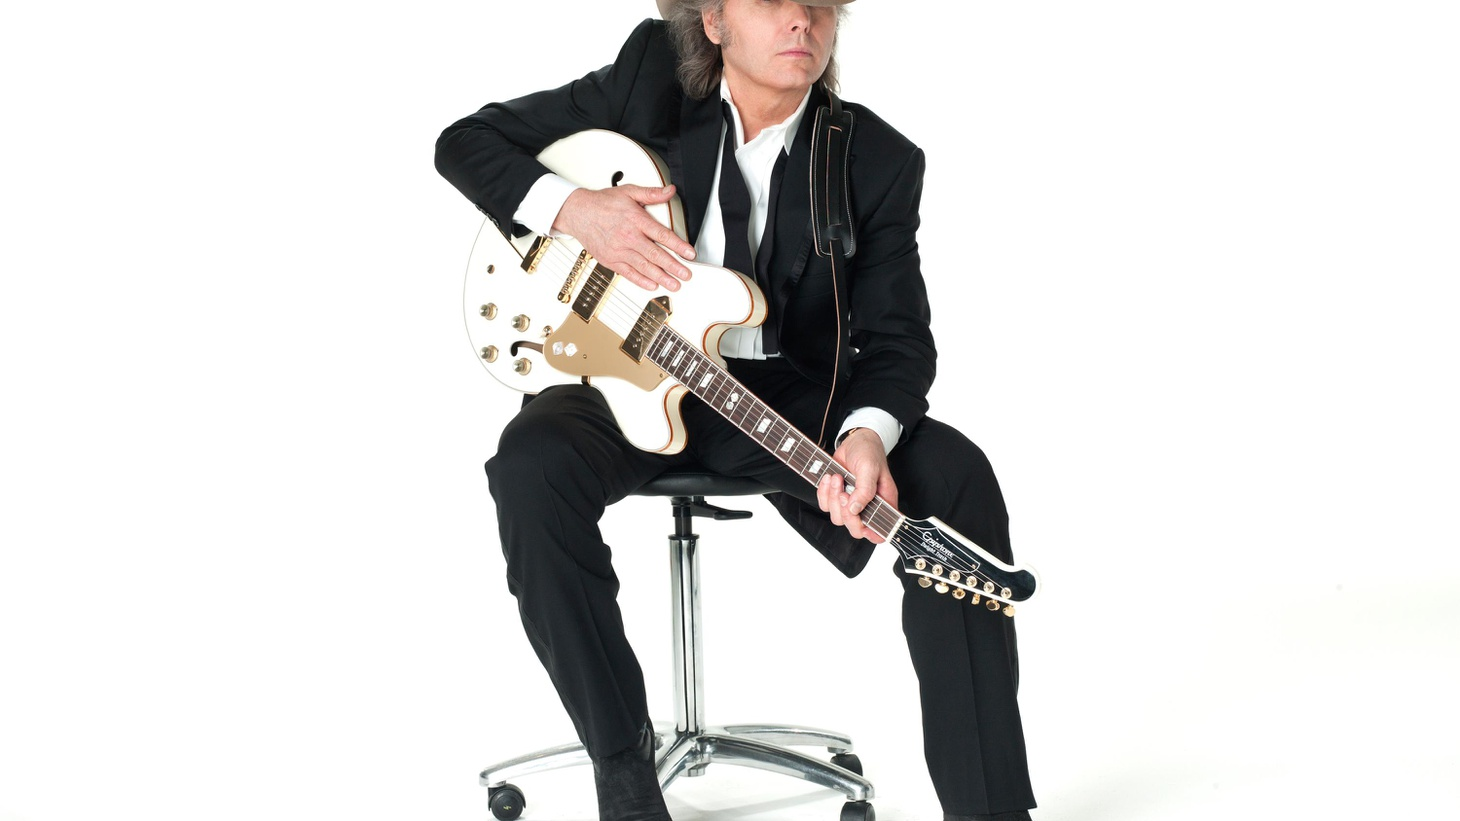 Dwight Yoakam has sold 25 million recordings worldwide with his brand of rock and country. His new CD -- his first in 5 years -- sees him working with unexpected guests